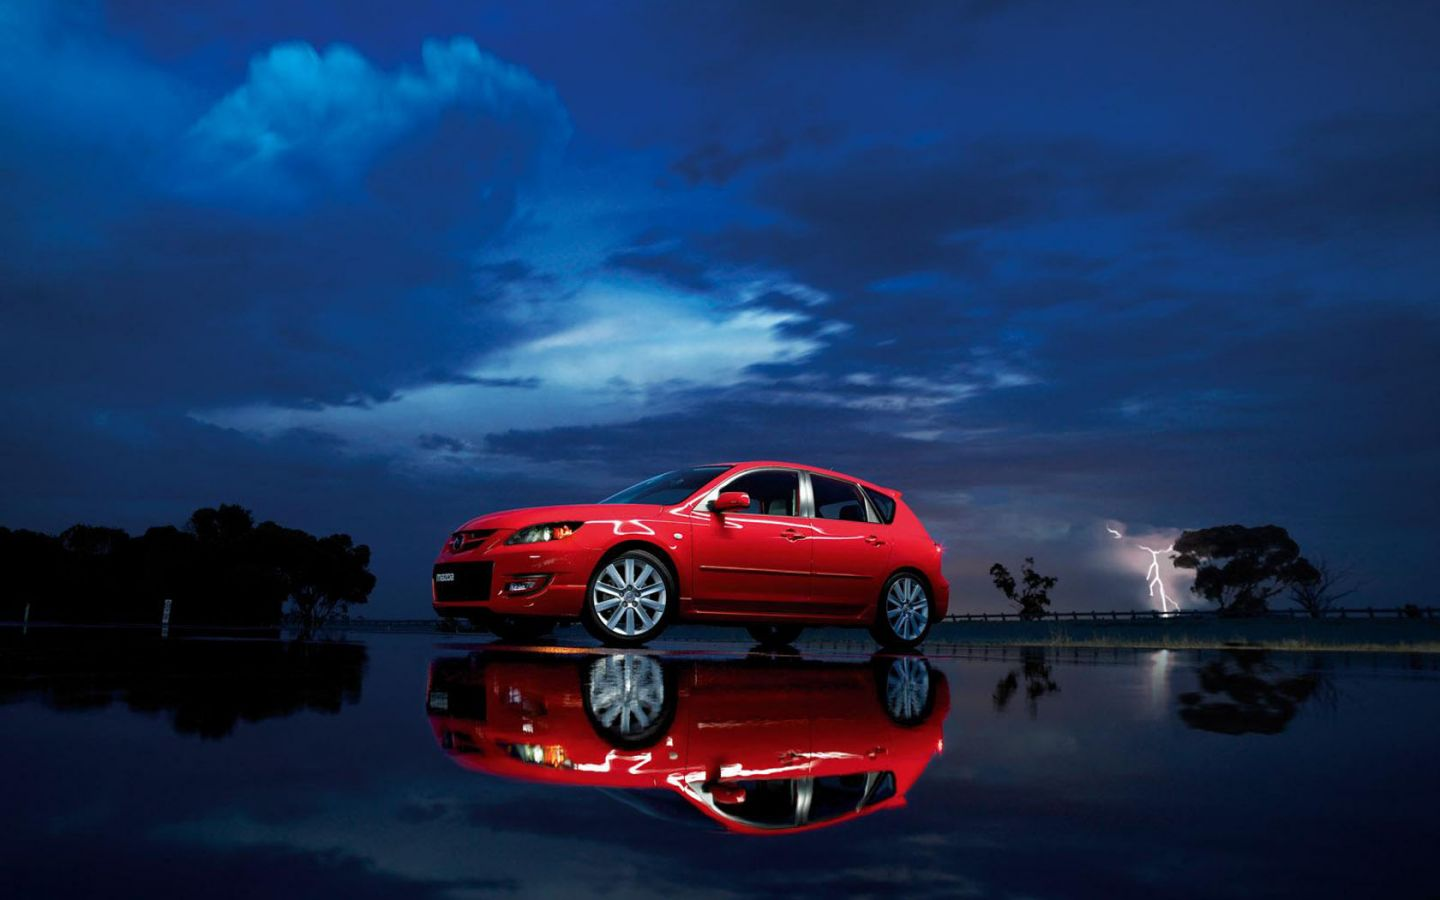 Mazda 3 Mps Red Reflection Wallpaper 1440x900